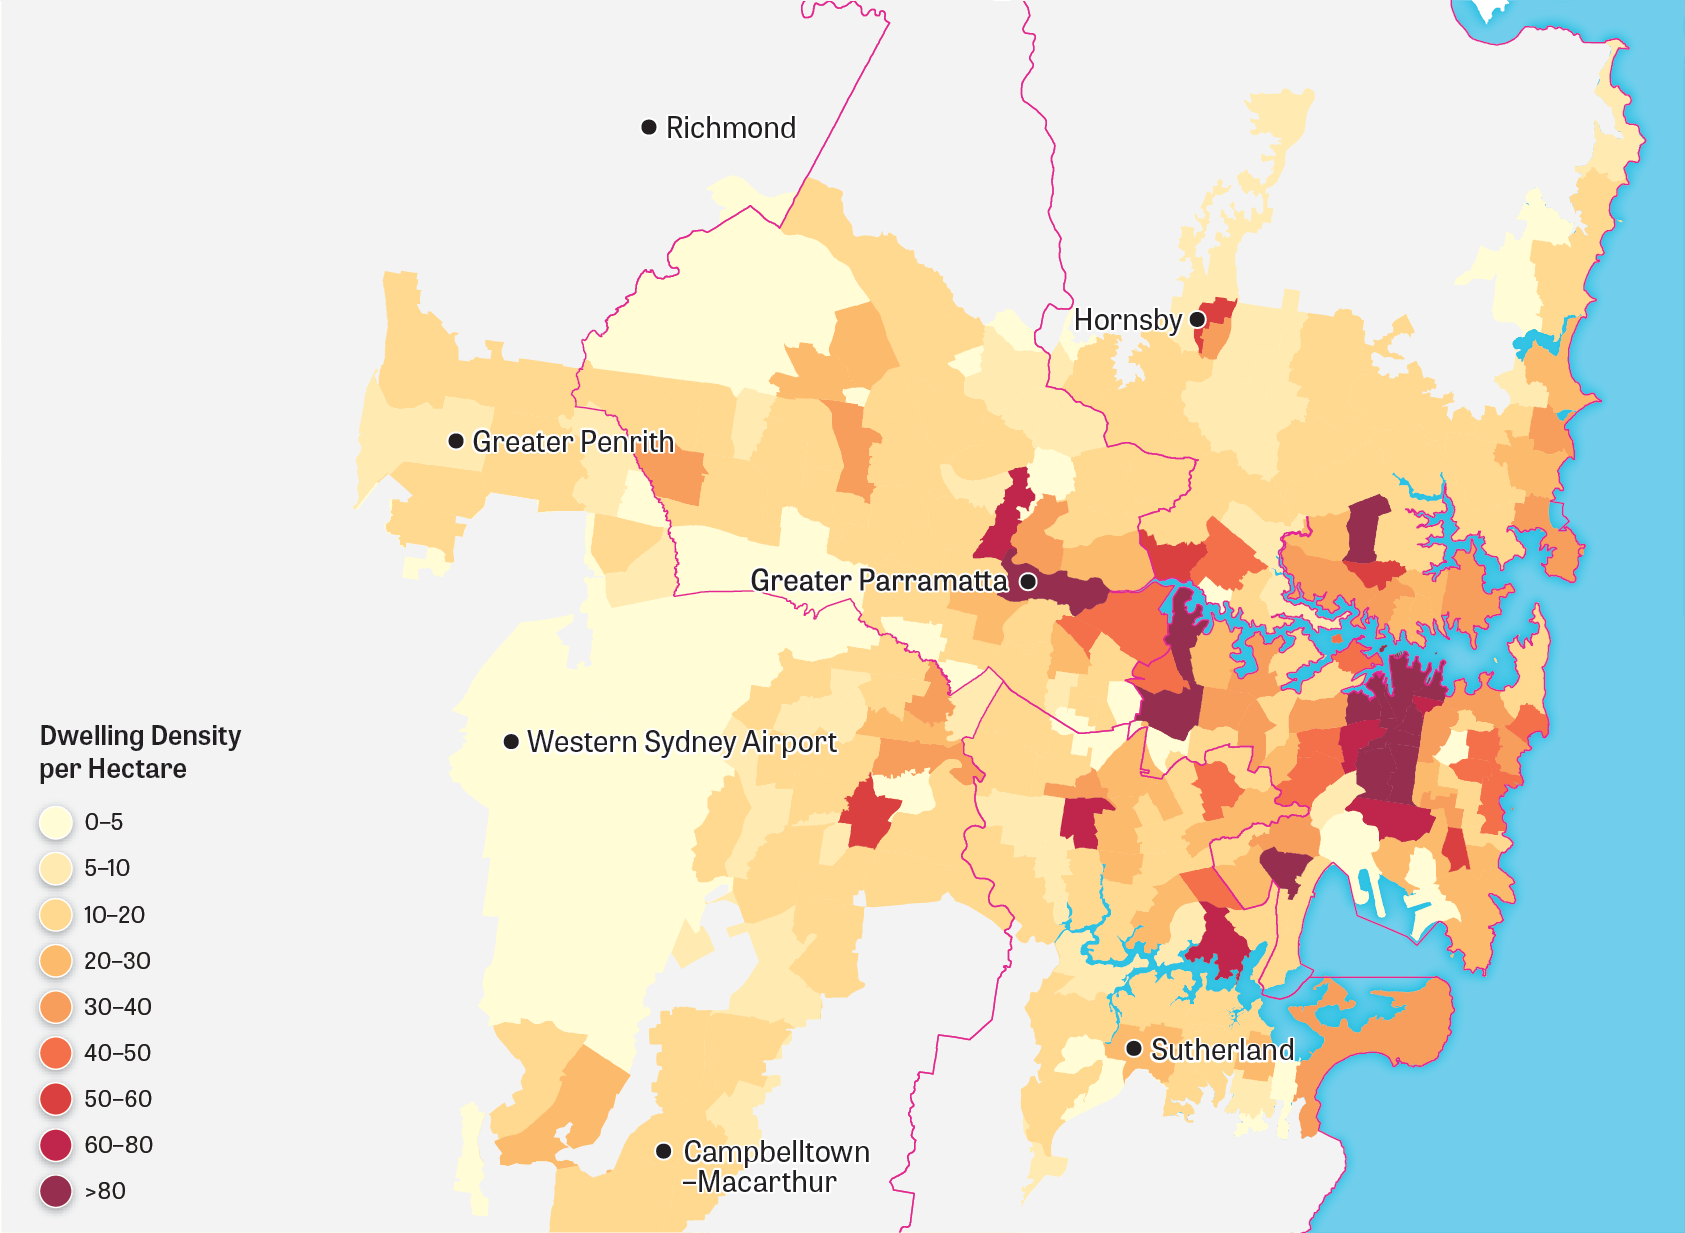 Map showing Greater Sydney's urban landform for 2016.